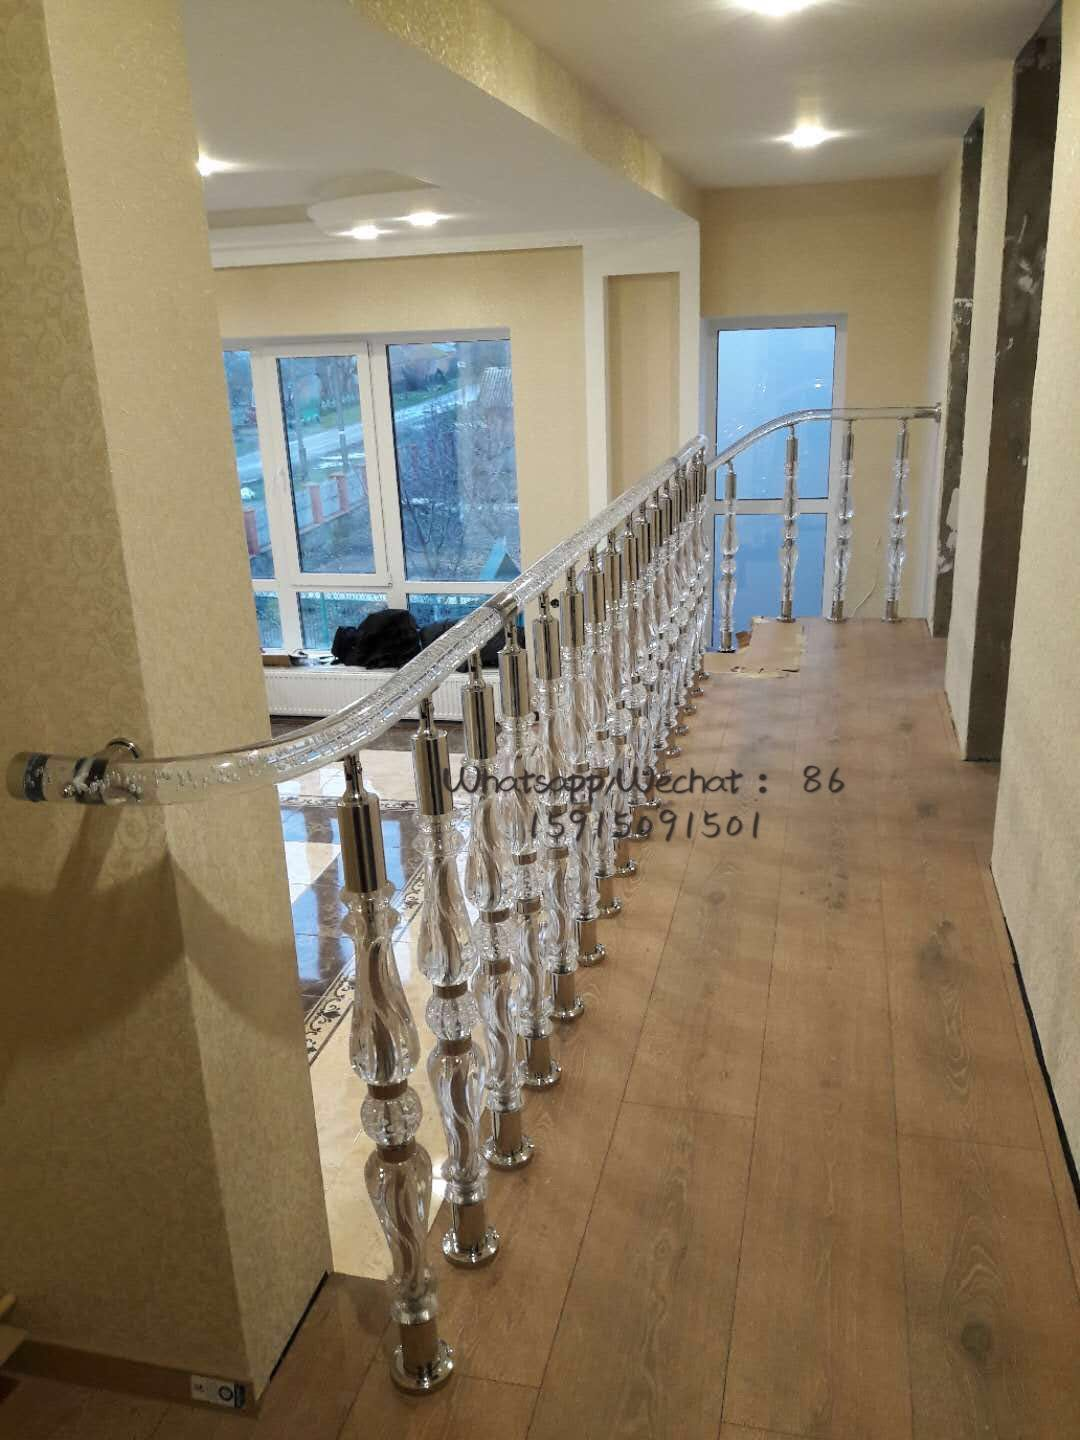 Best Acrylic Staircase Stainless Steel And Acrylic Stair 400 x 300